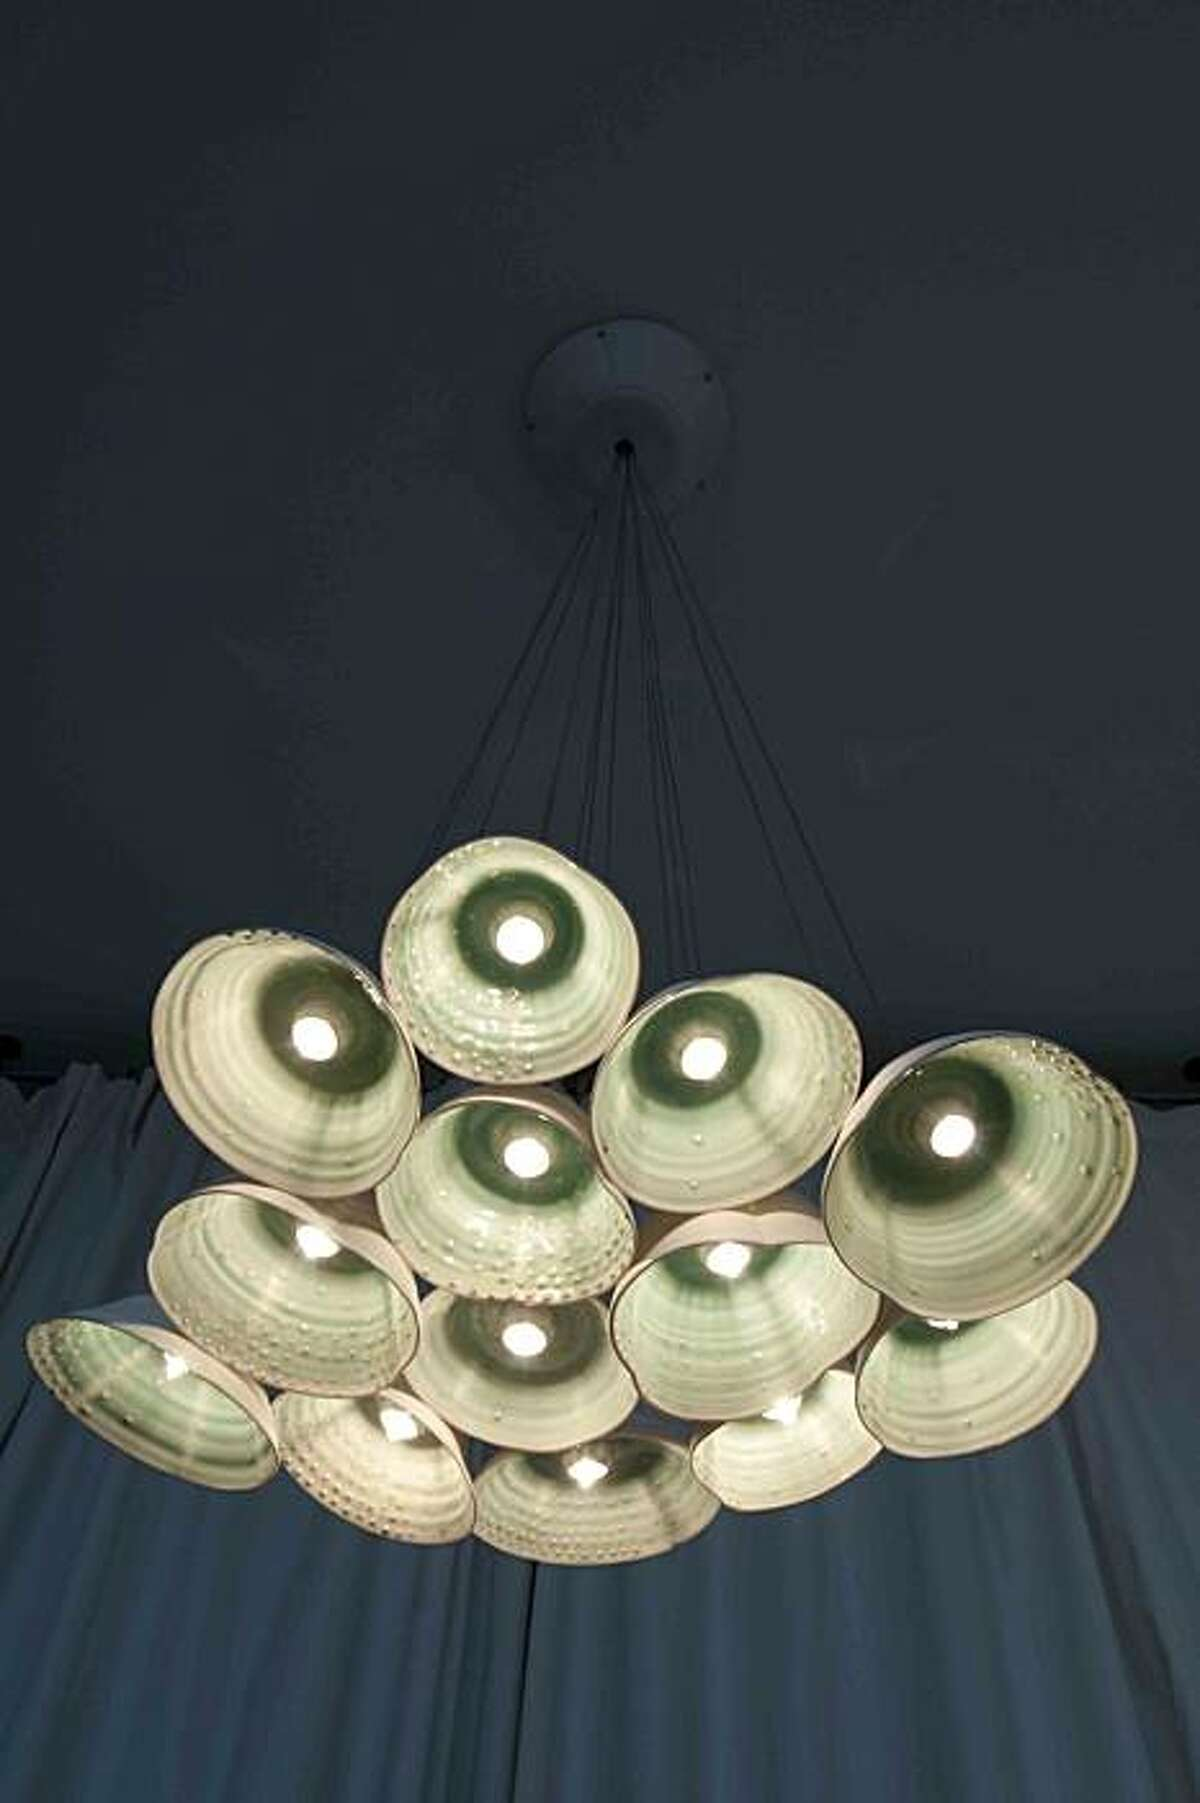 Blossom chandelier by Lesley Anton